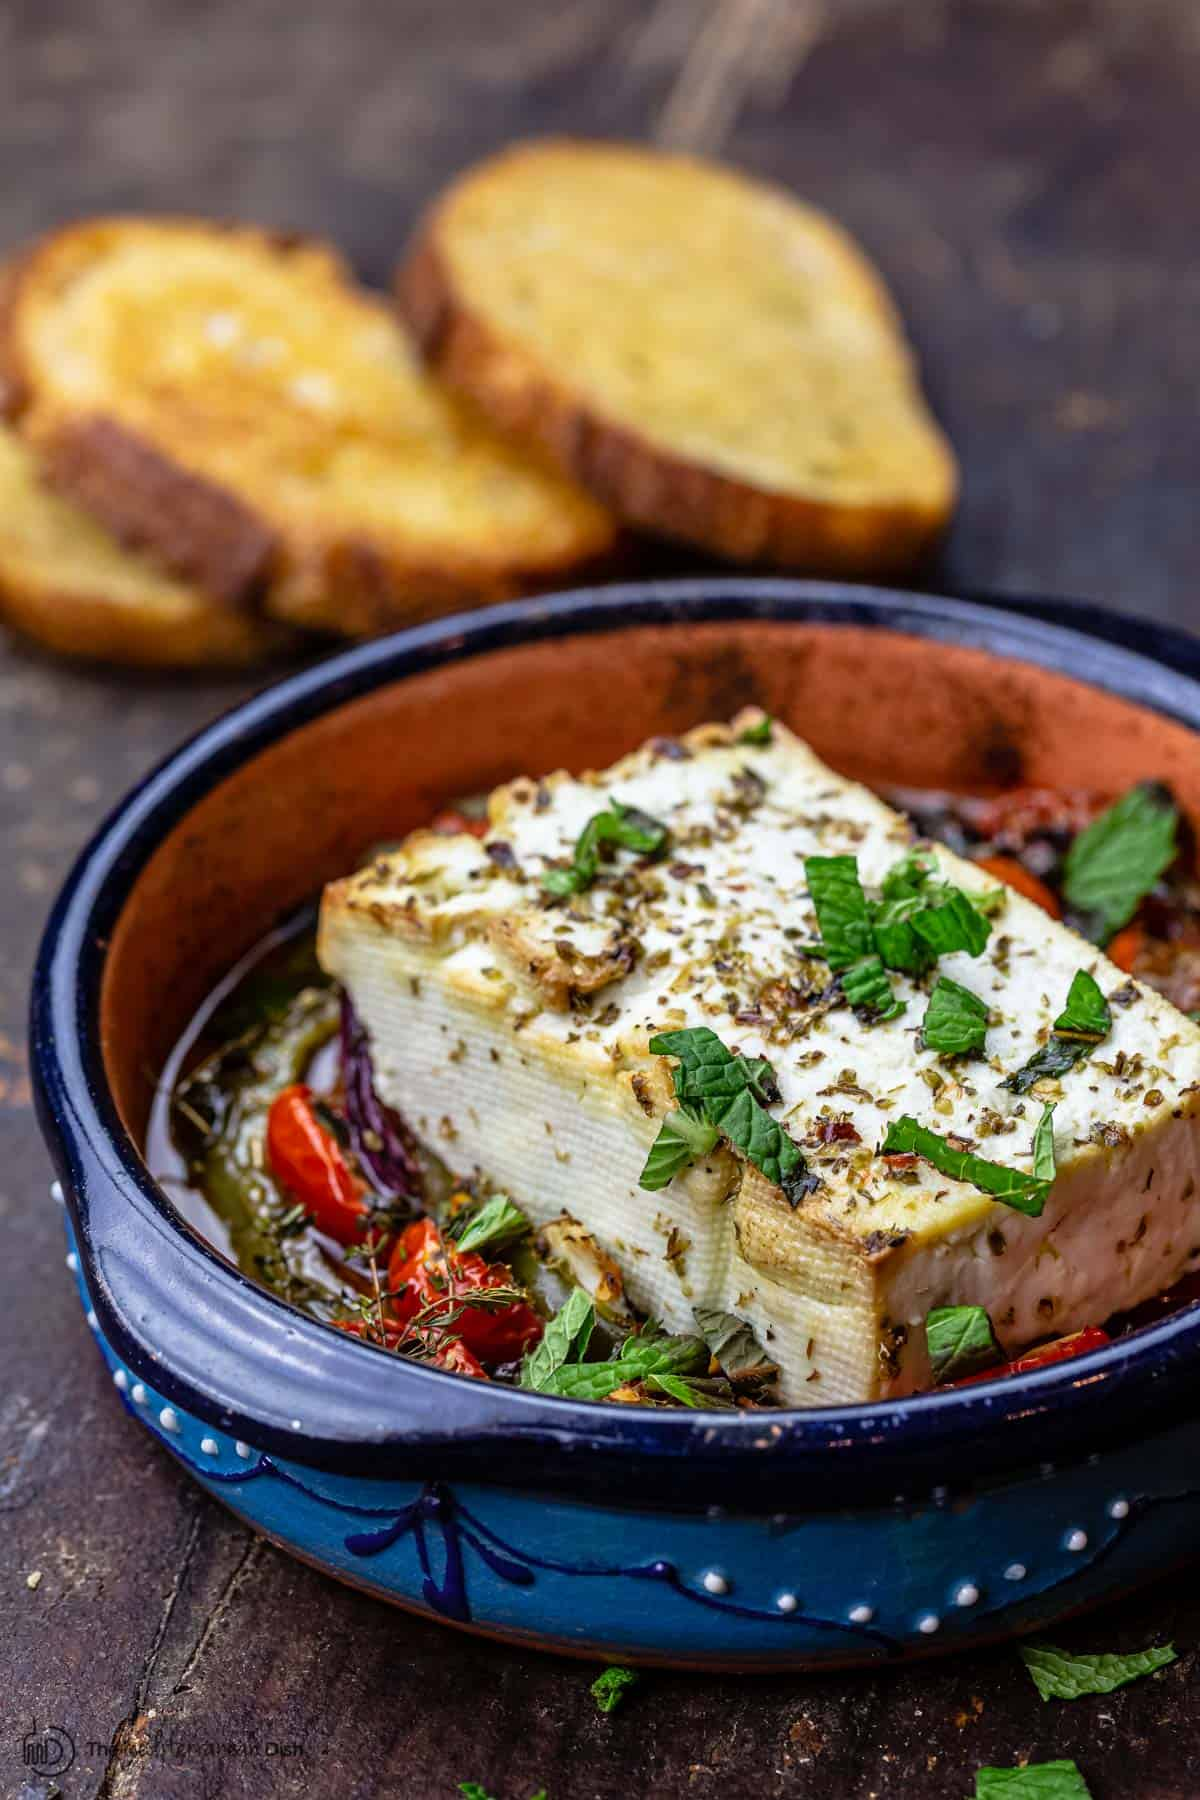 Baked feta in a serving dish with toasted bread to the side